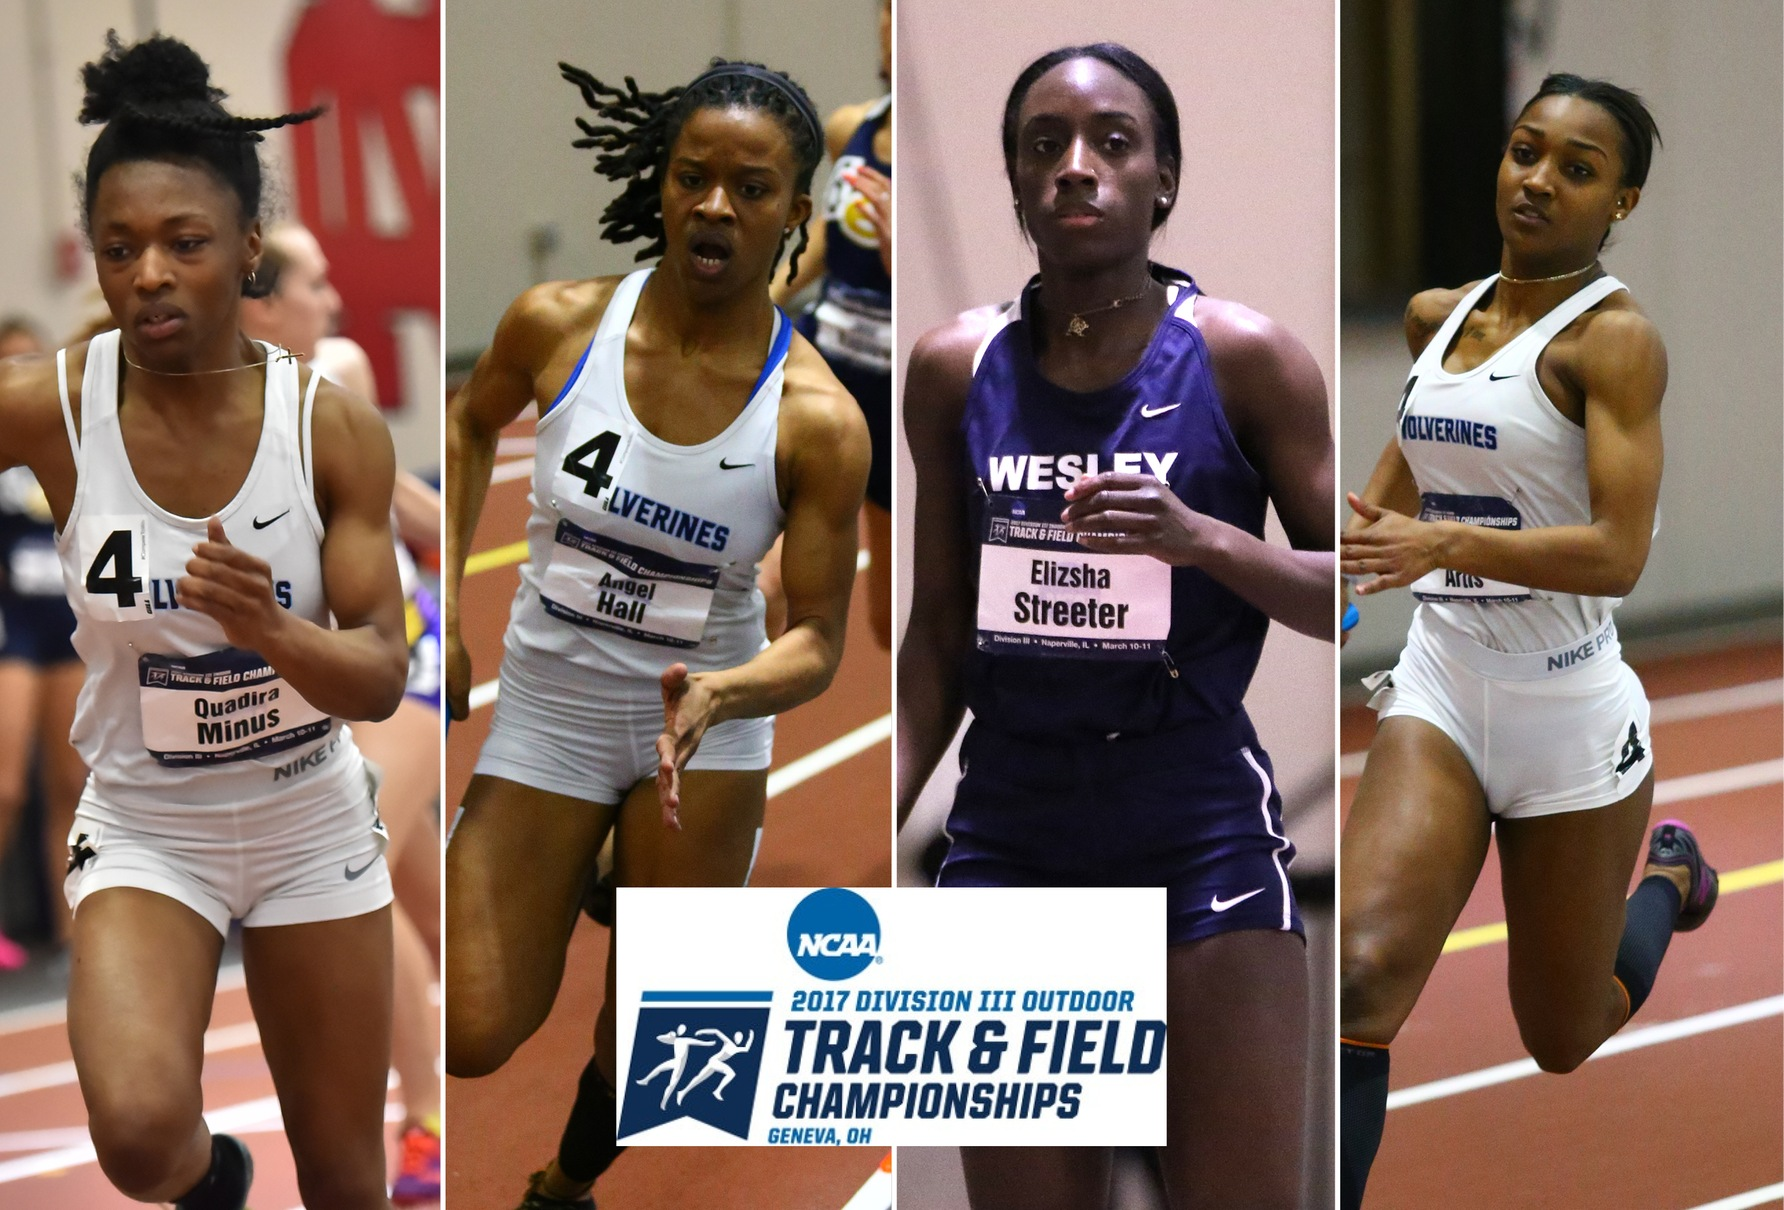 Women's 4x400-meter relay advances to Saturday's NCAA Final